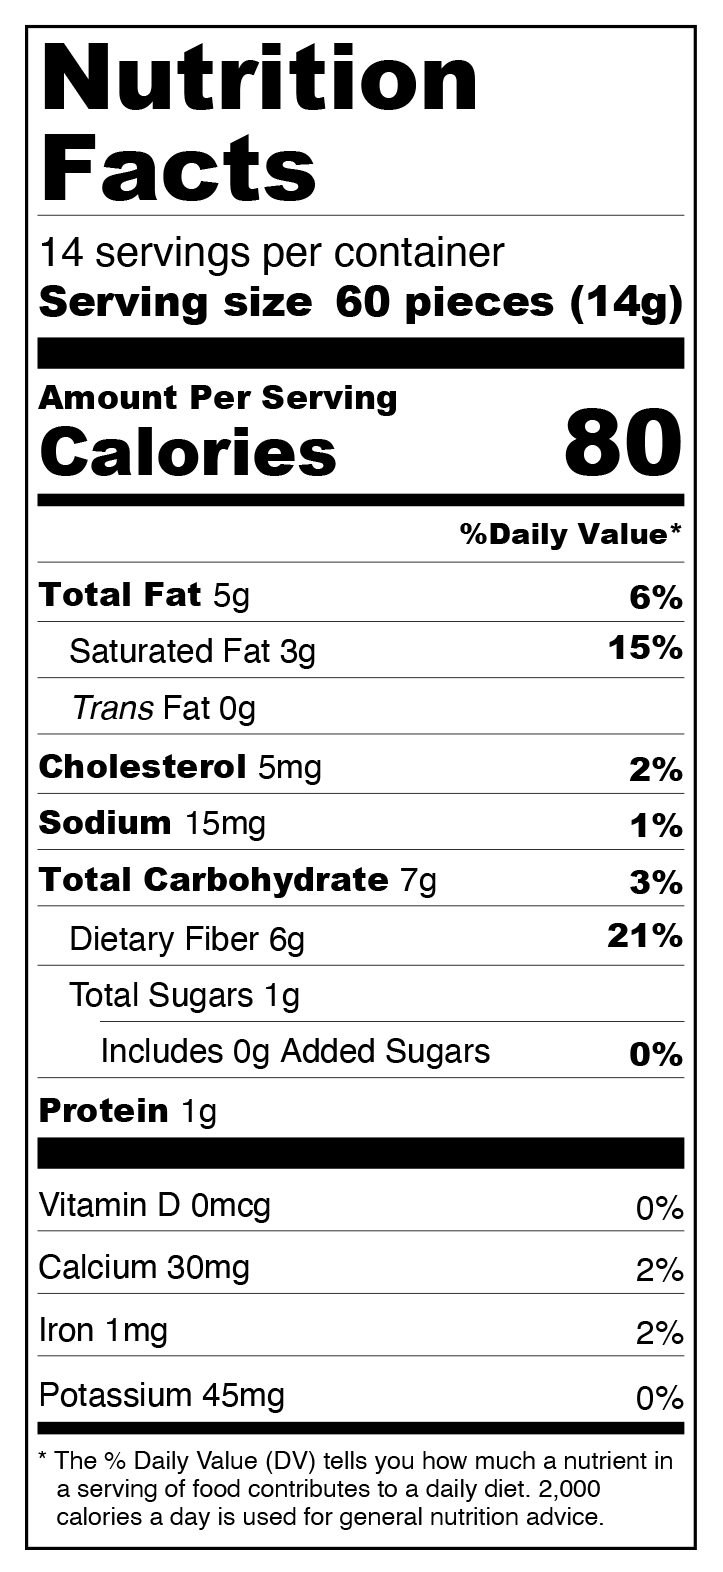 Peppermint White Chocolate Chips - No Sugar Added, Low Carb - Limited Edition Nutrition Facts